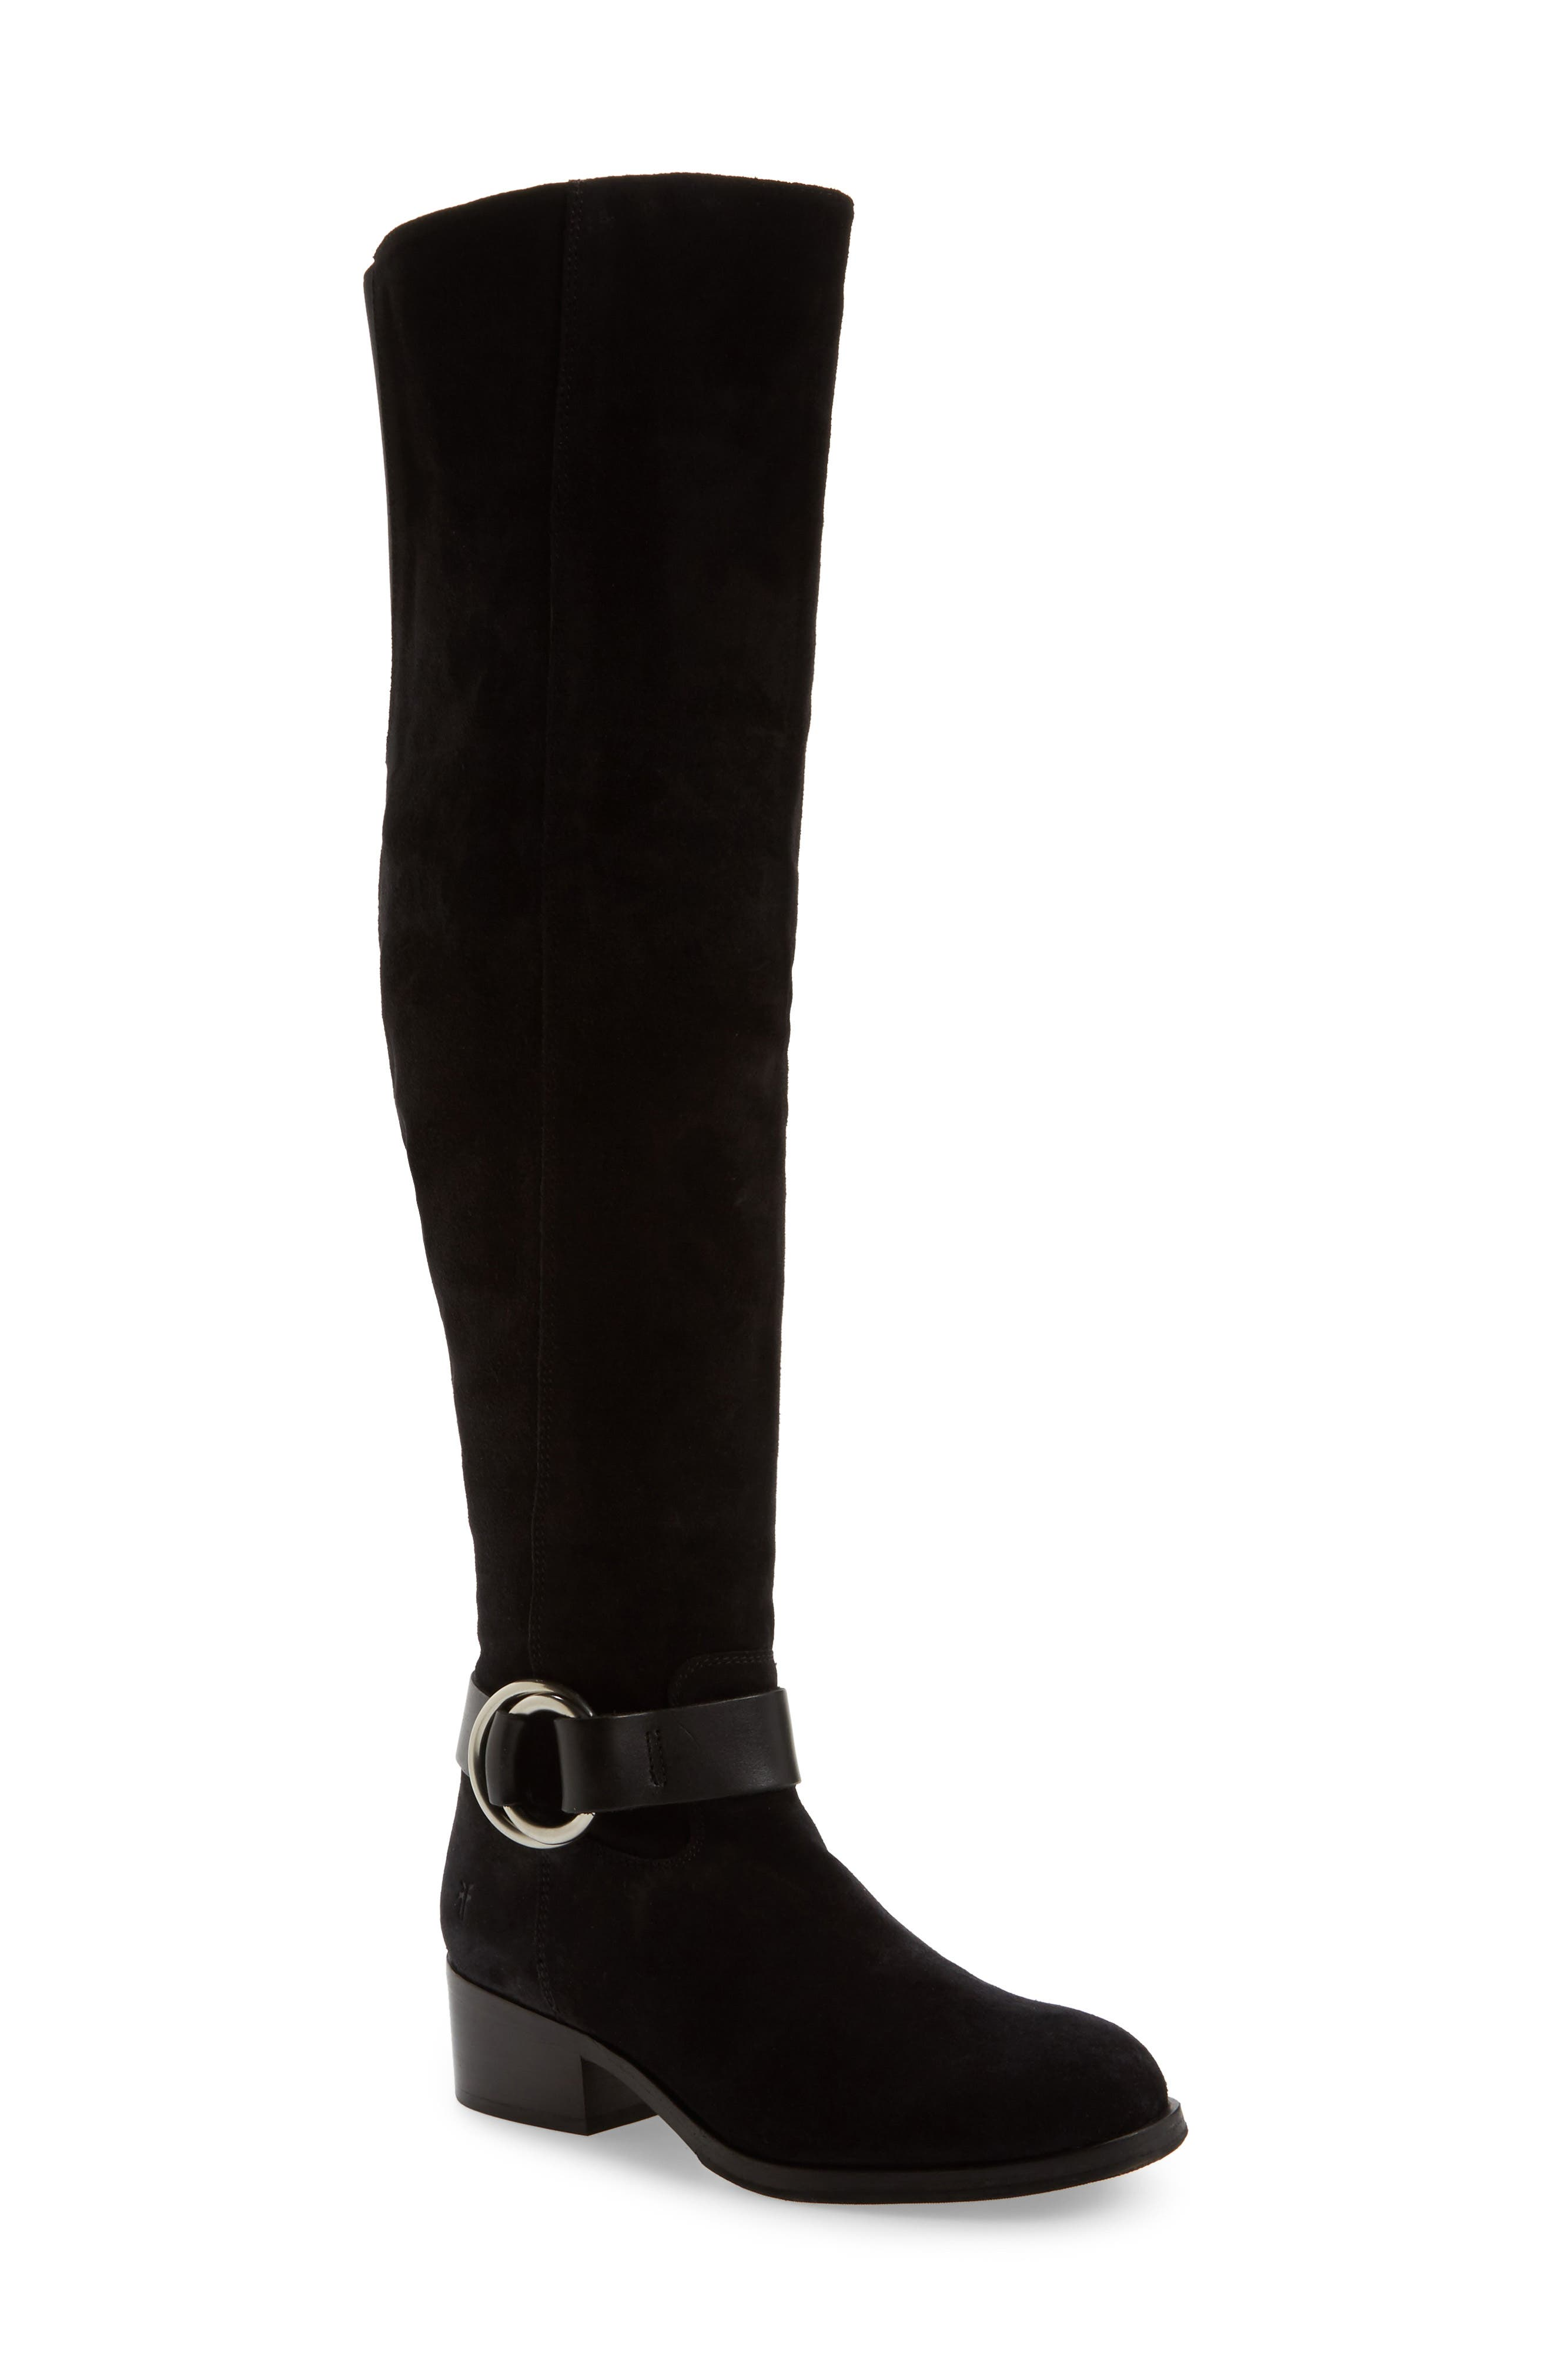 Kristen Harness Over the Knee Boot,                         Main,                         color, 001